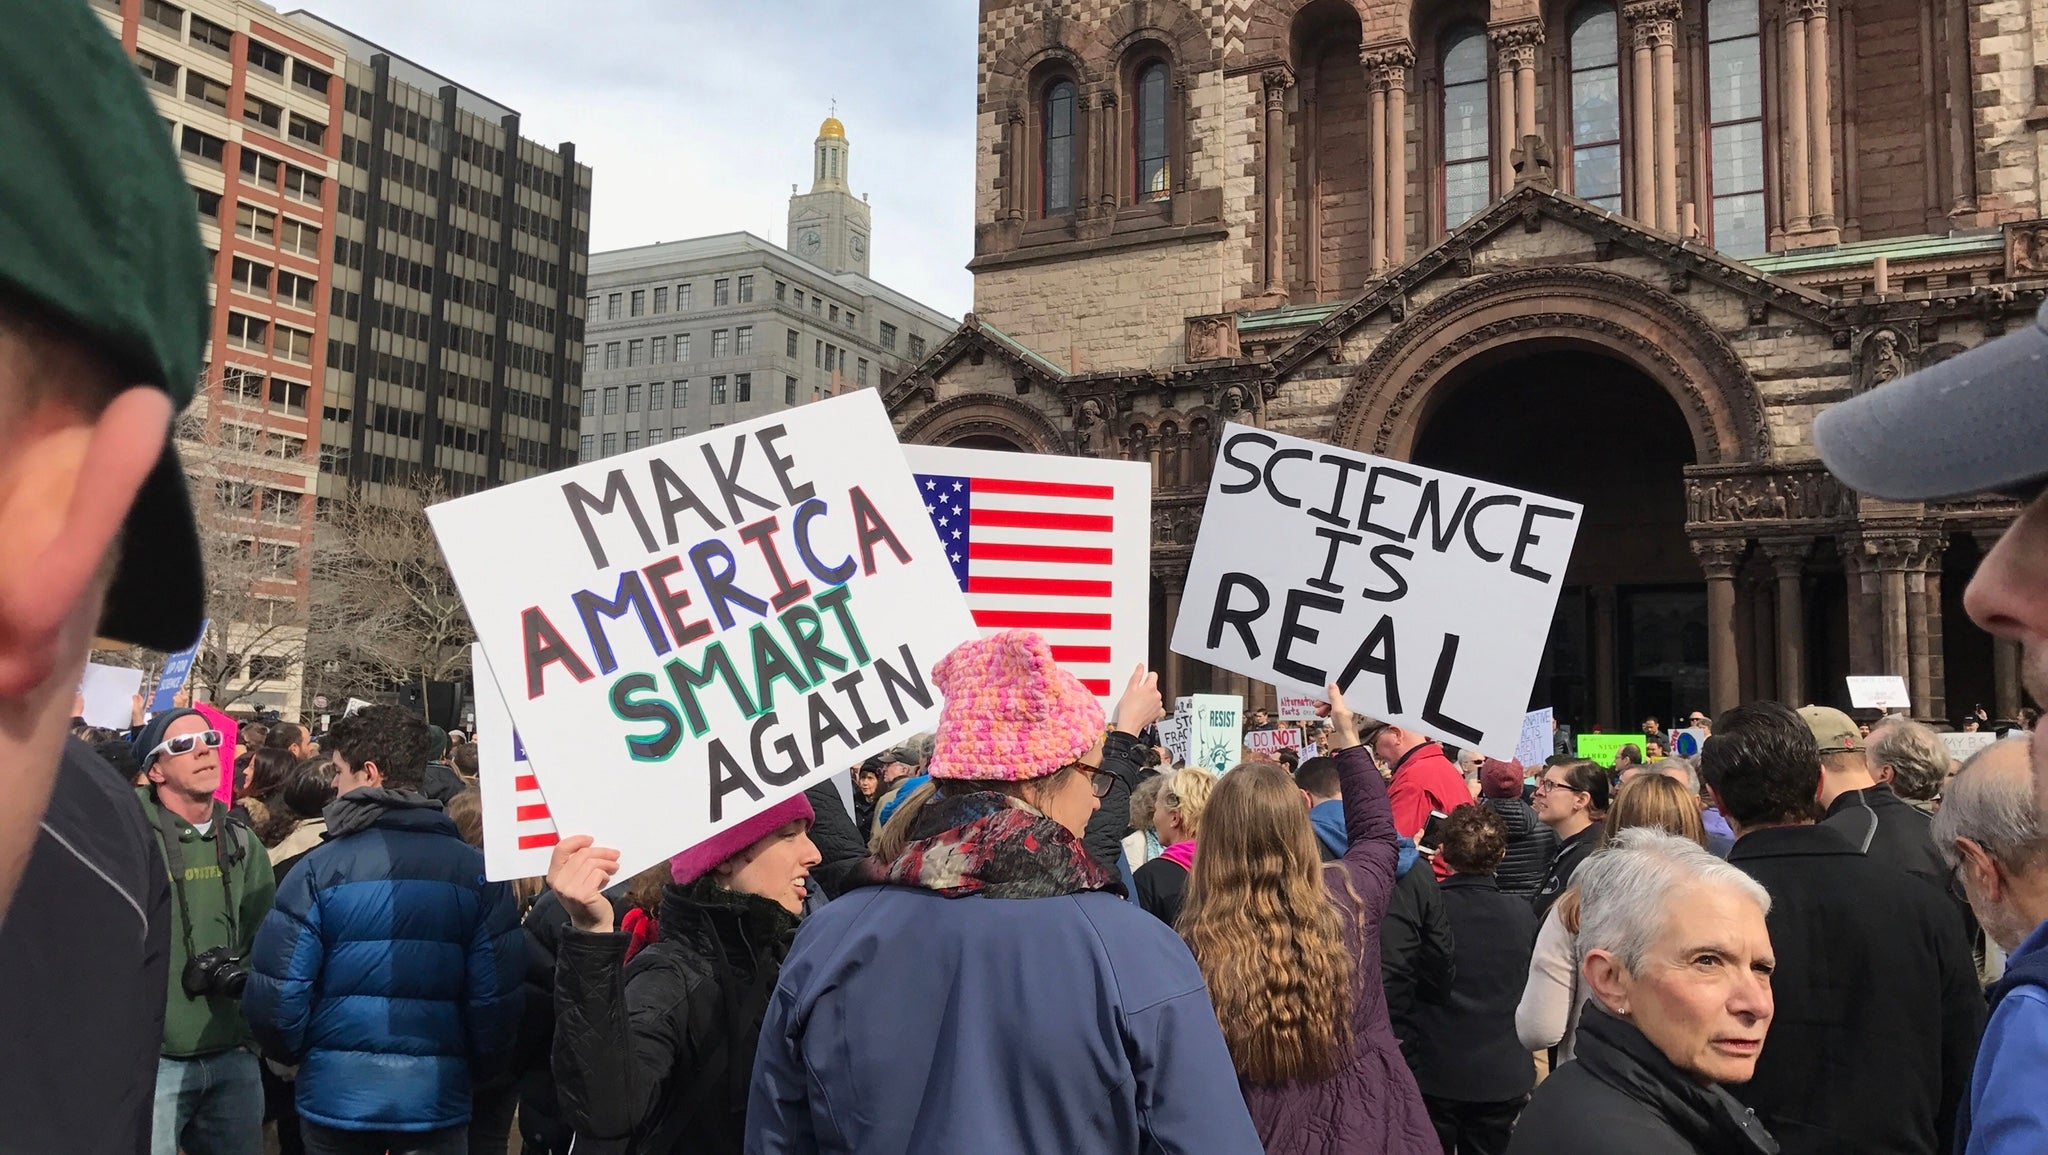 Scientists Protest, Plan To Fight Back Against Trump In Boston